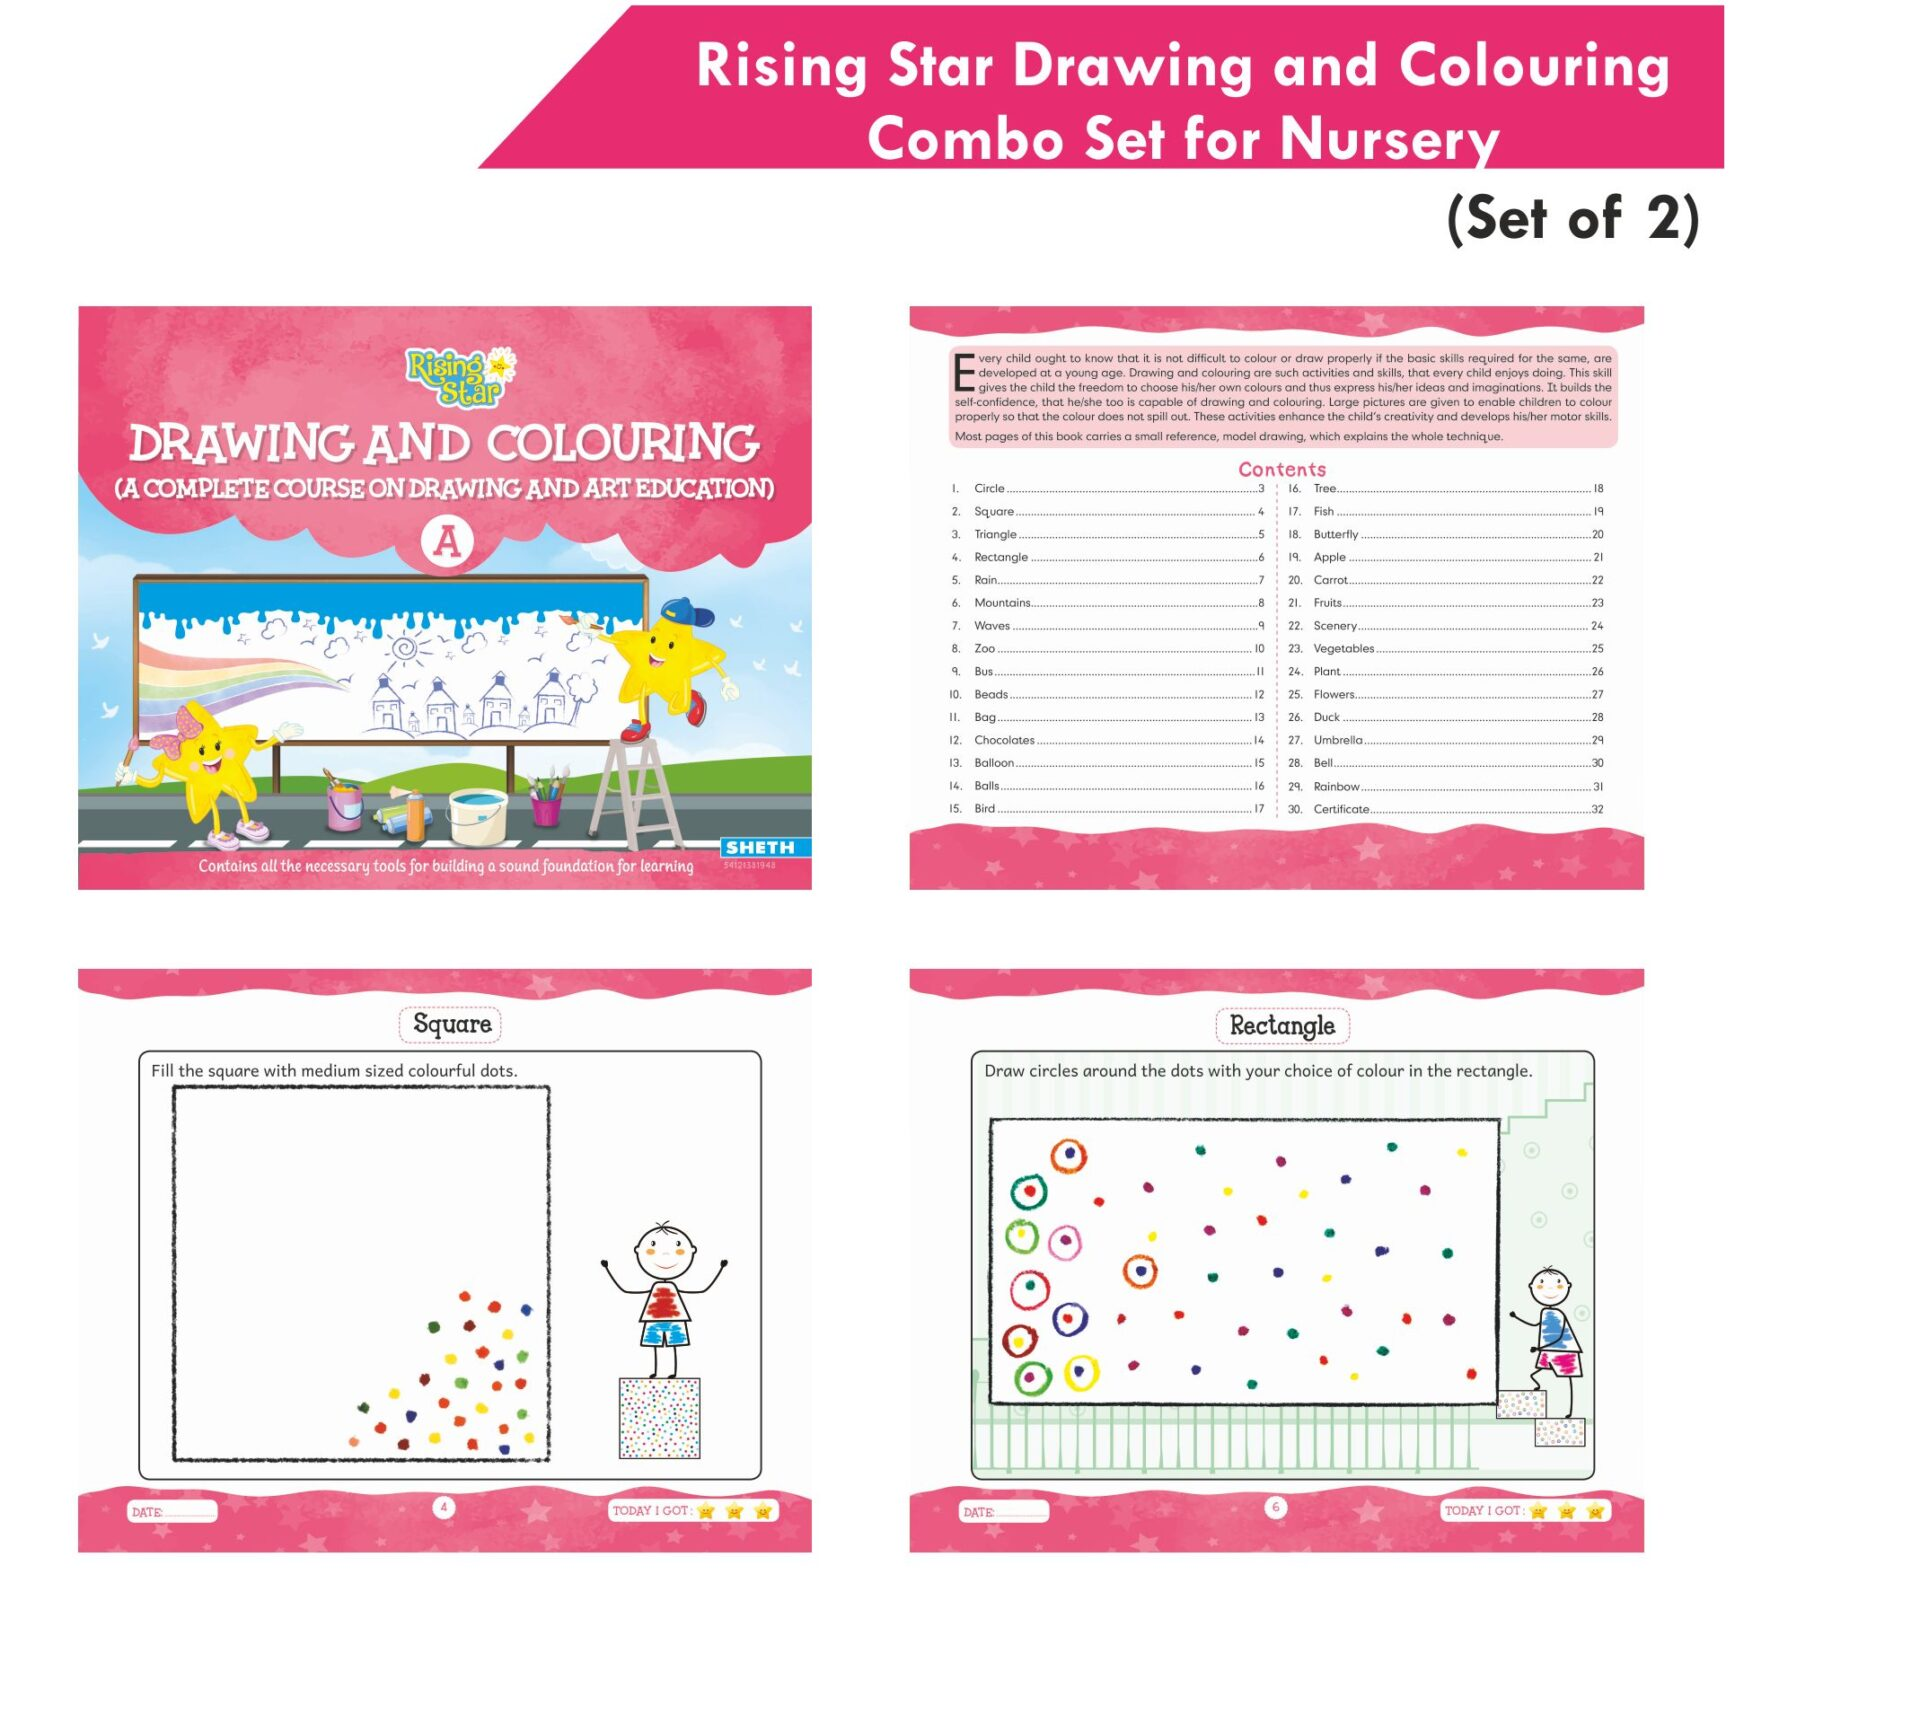 Rising Star Drawing and Colouring Combo Set for Nursery Set of 2 3